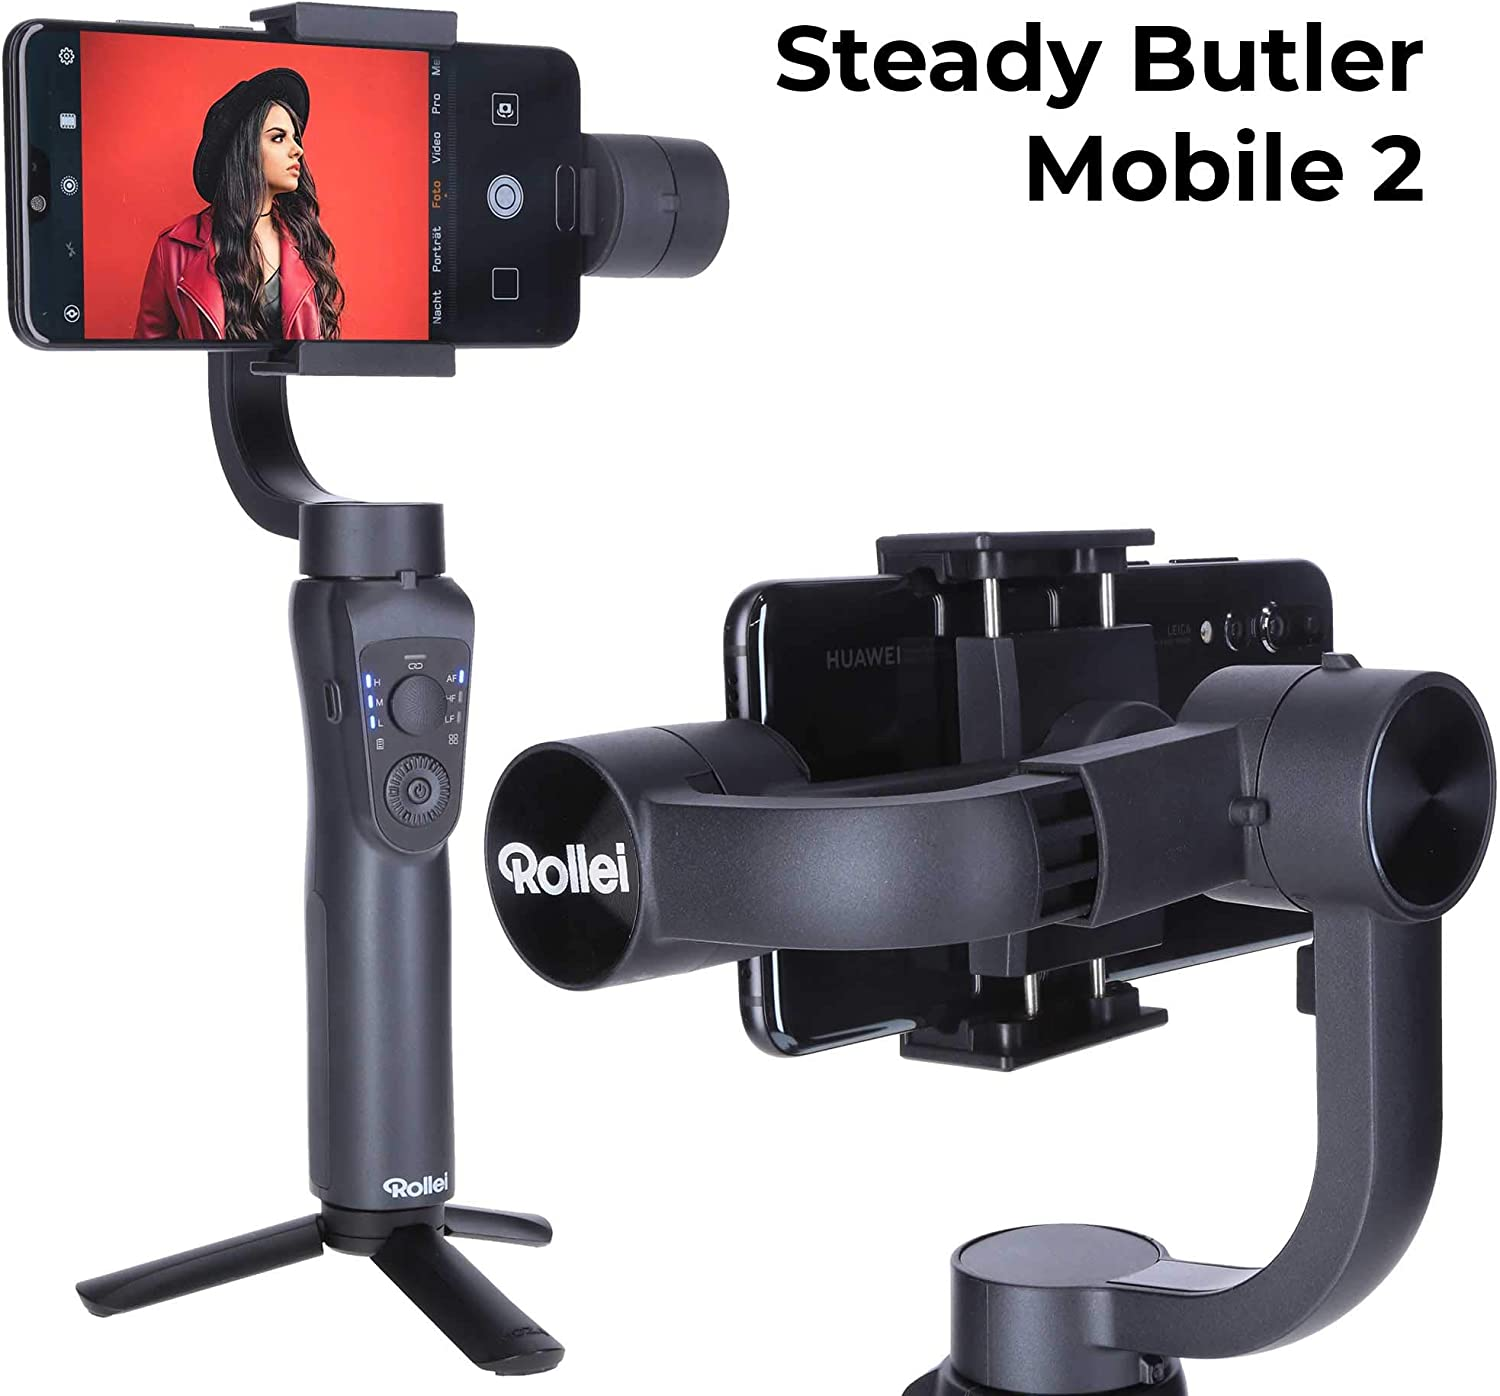 Rollei Steady Butler Mobile 2 Smartphone Gimbal I Timelapse ...